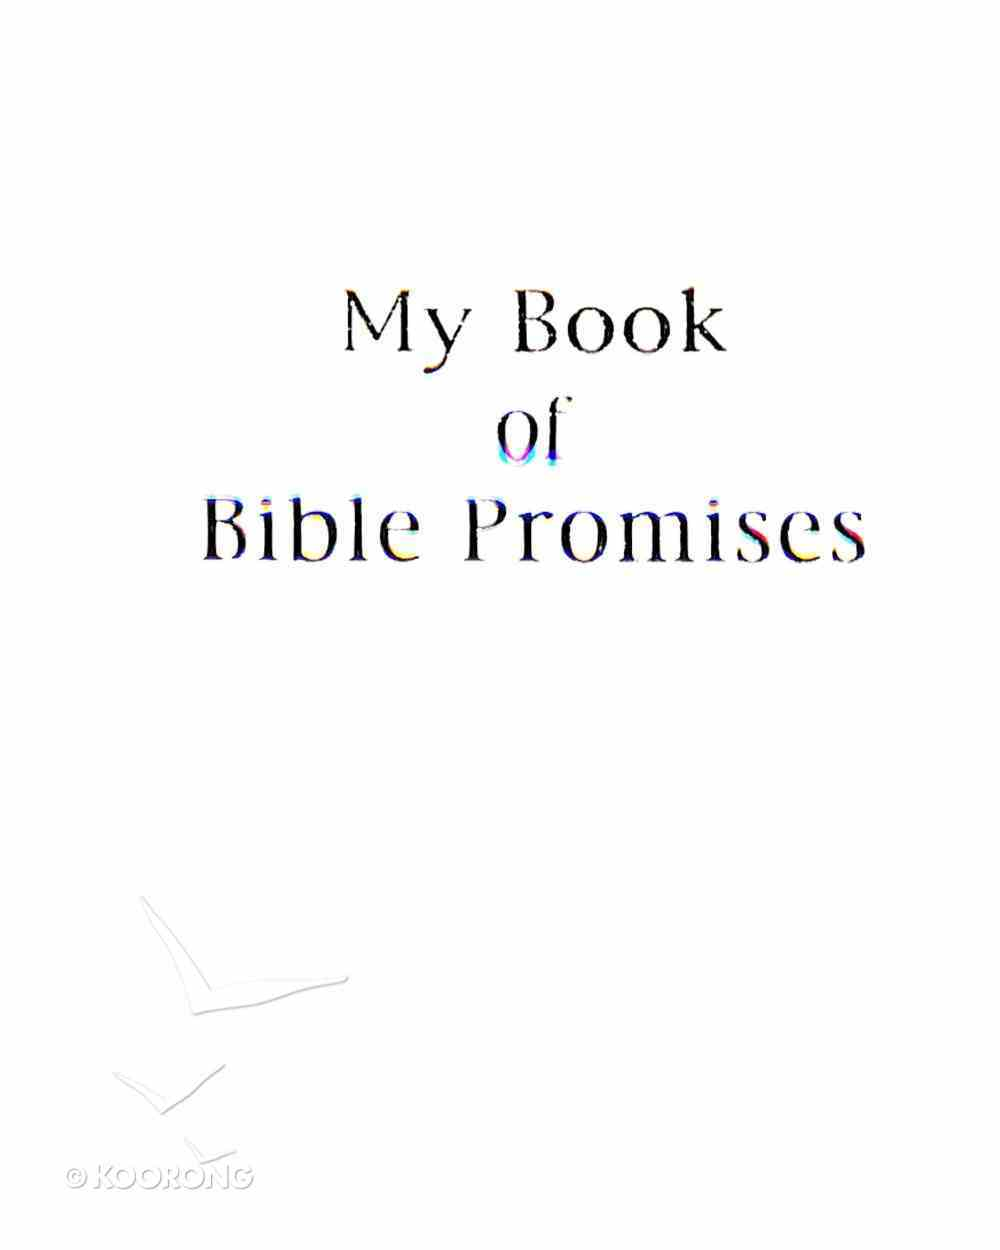 My Book of Bible Promises (White) Imitation Leather